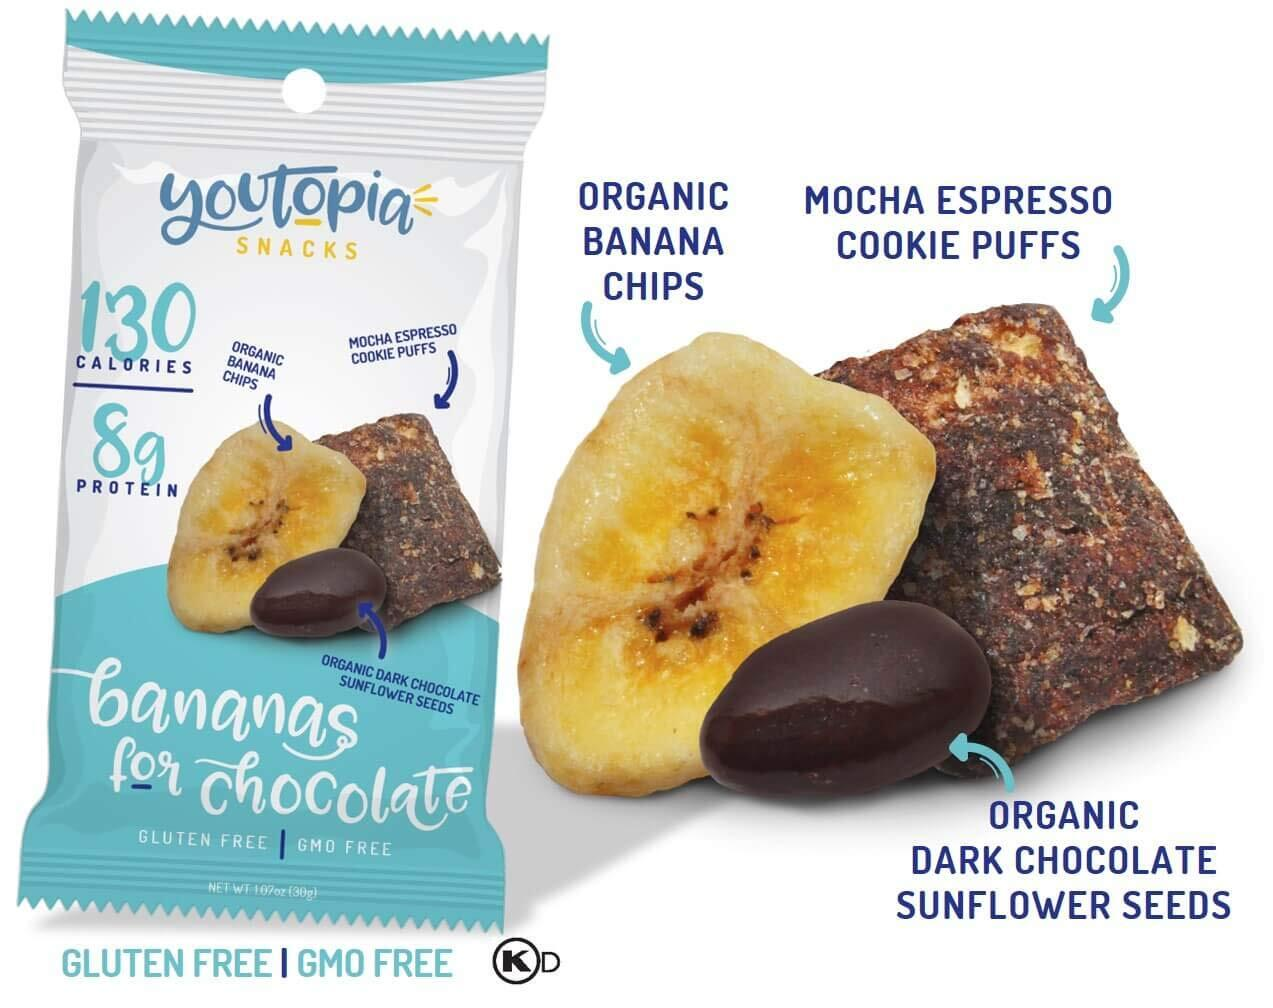 Youtopia Snacks ヘルシースナック Bananas for Chocolate 10袋セット